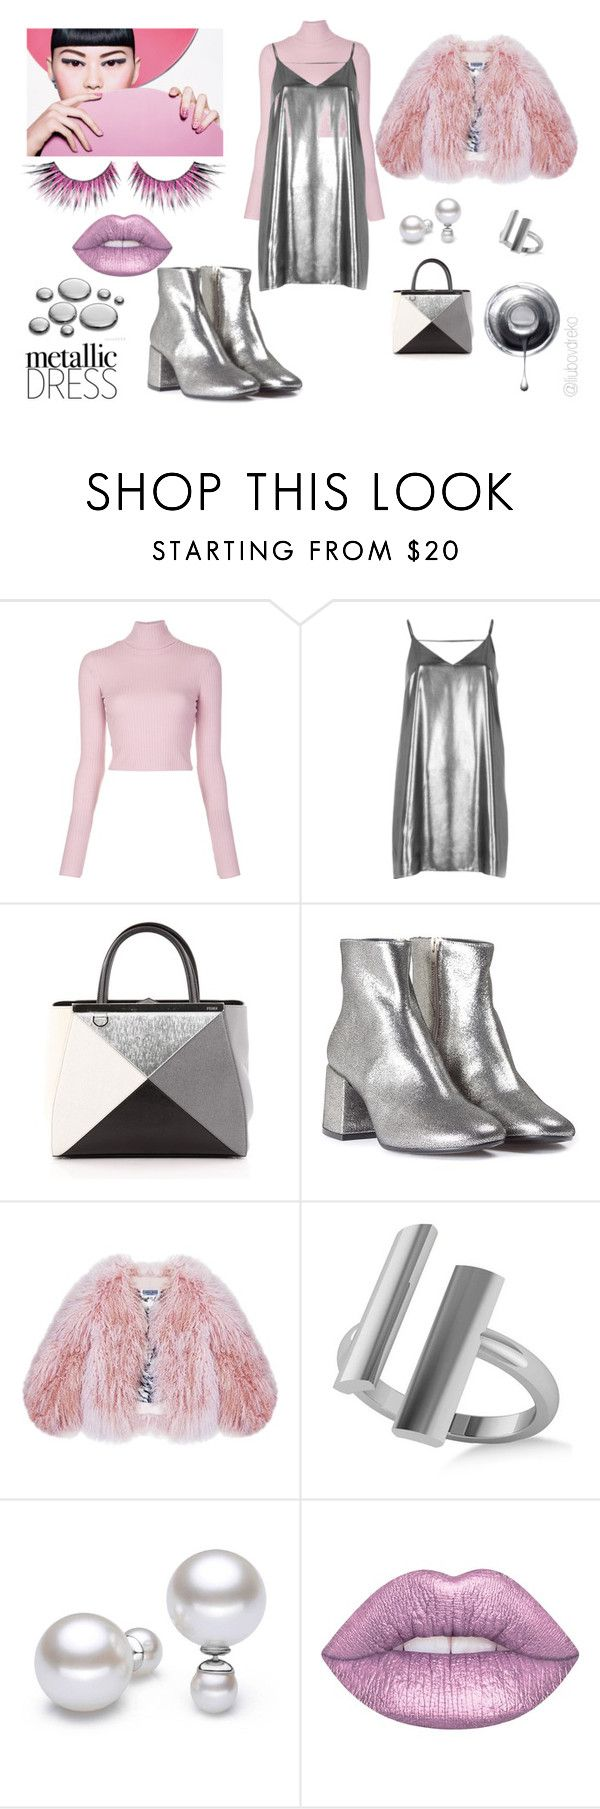 """Metallic dress"" by liubovdreko-1 on Polyvore featuring мода, A.L.C., River Island, Fendi, MM6 Maison Margiela, Florence Bridge, Allurez, Lime Crime, MAKE UP FOR EVER и metallic"